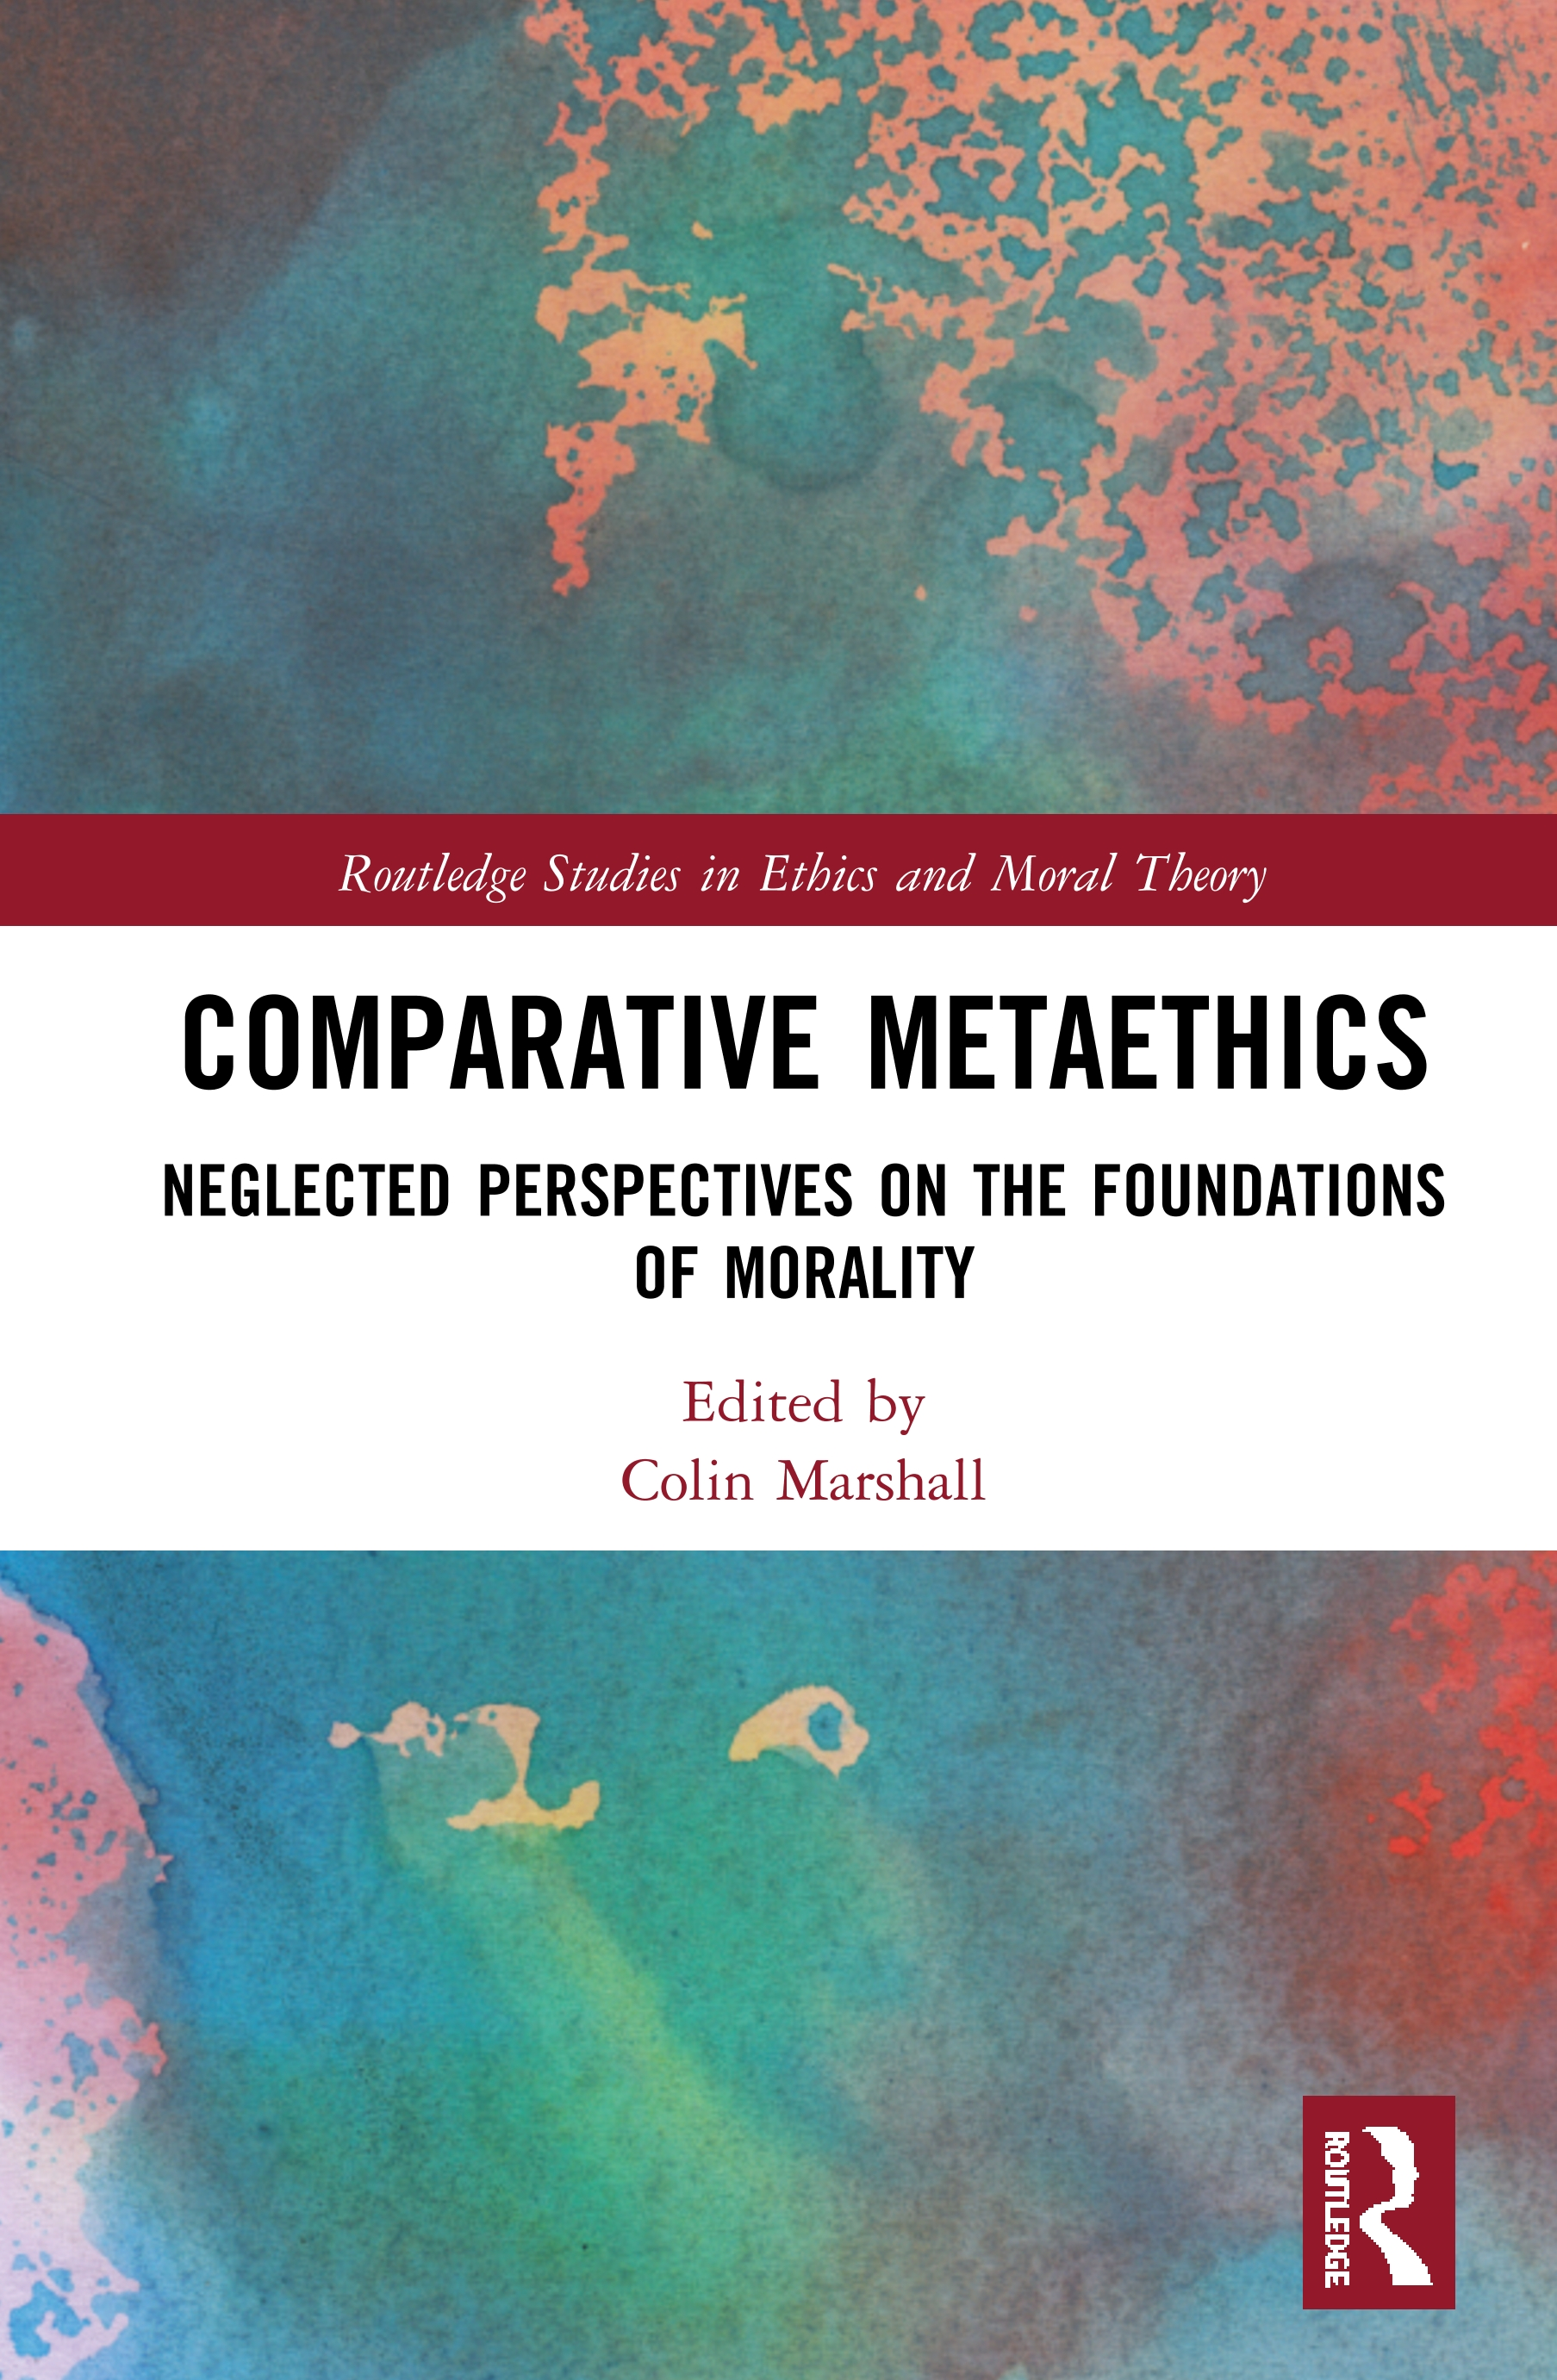 Comparative Metaethics: Neglected Perspectives on the Foundations of Morality book cover